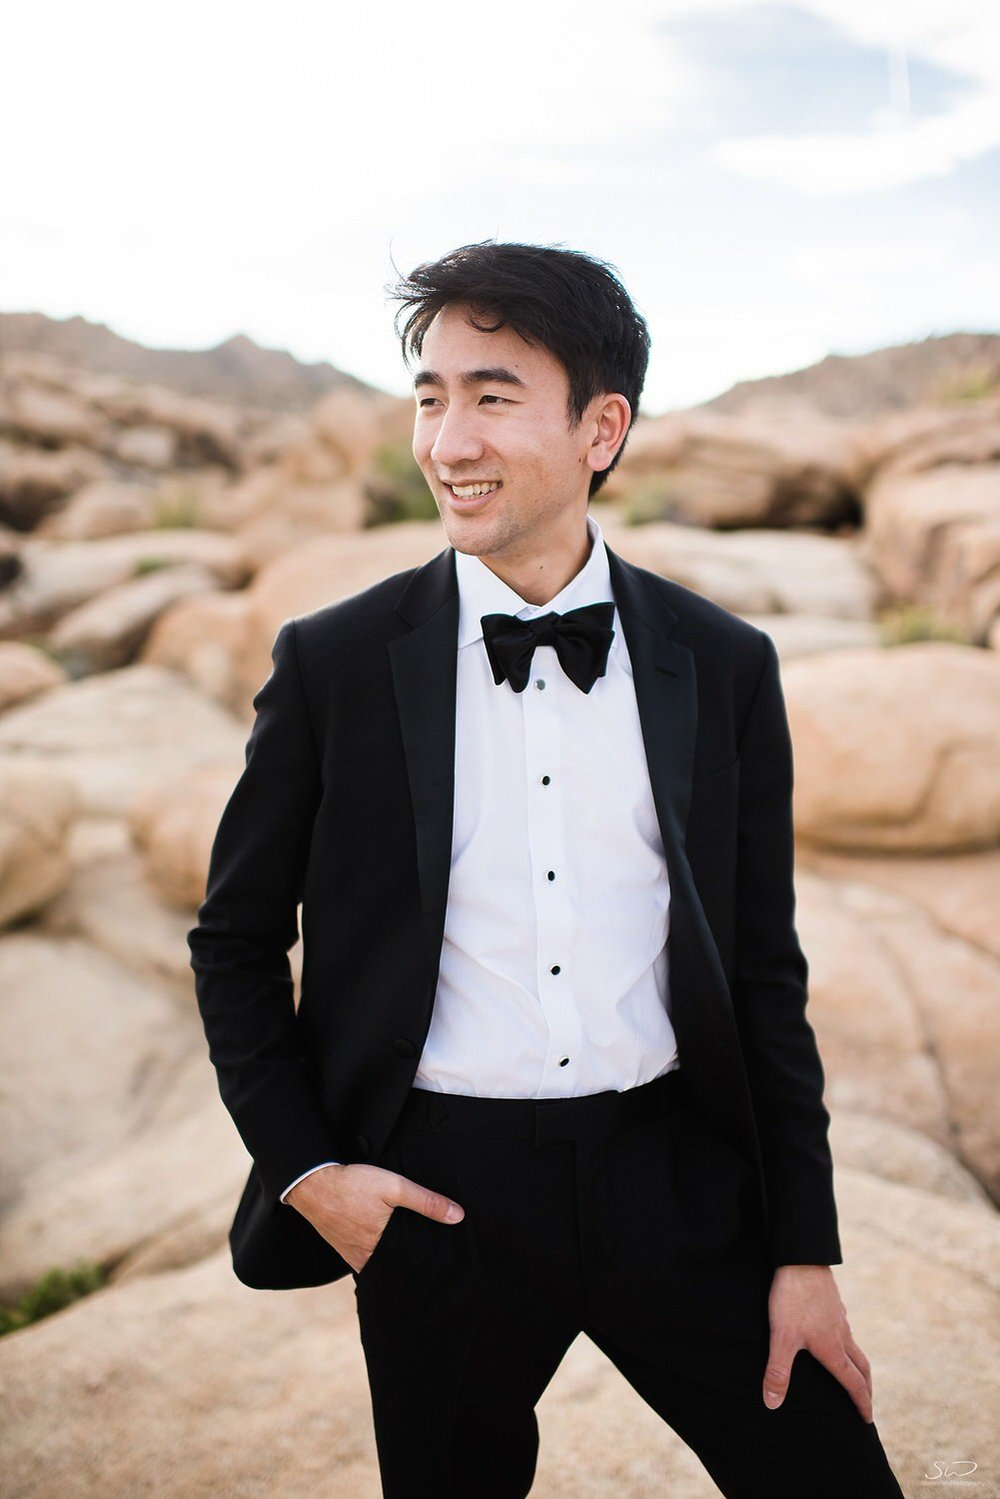 Groom with tux posing on rocks | Joshua Tree Desert Wedding, Engagement, Elopement Inspiration